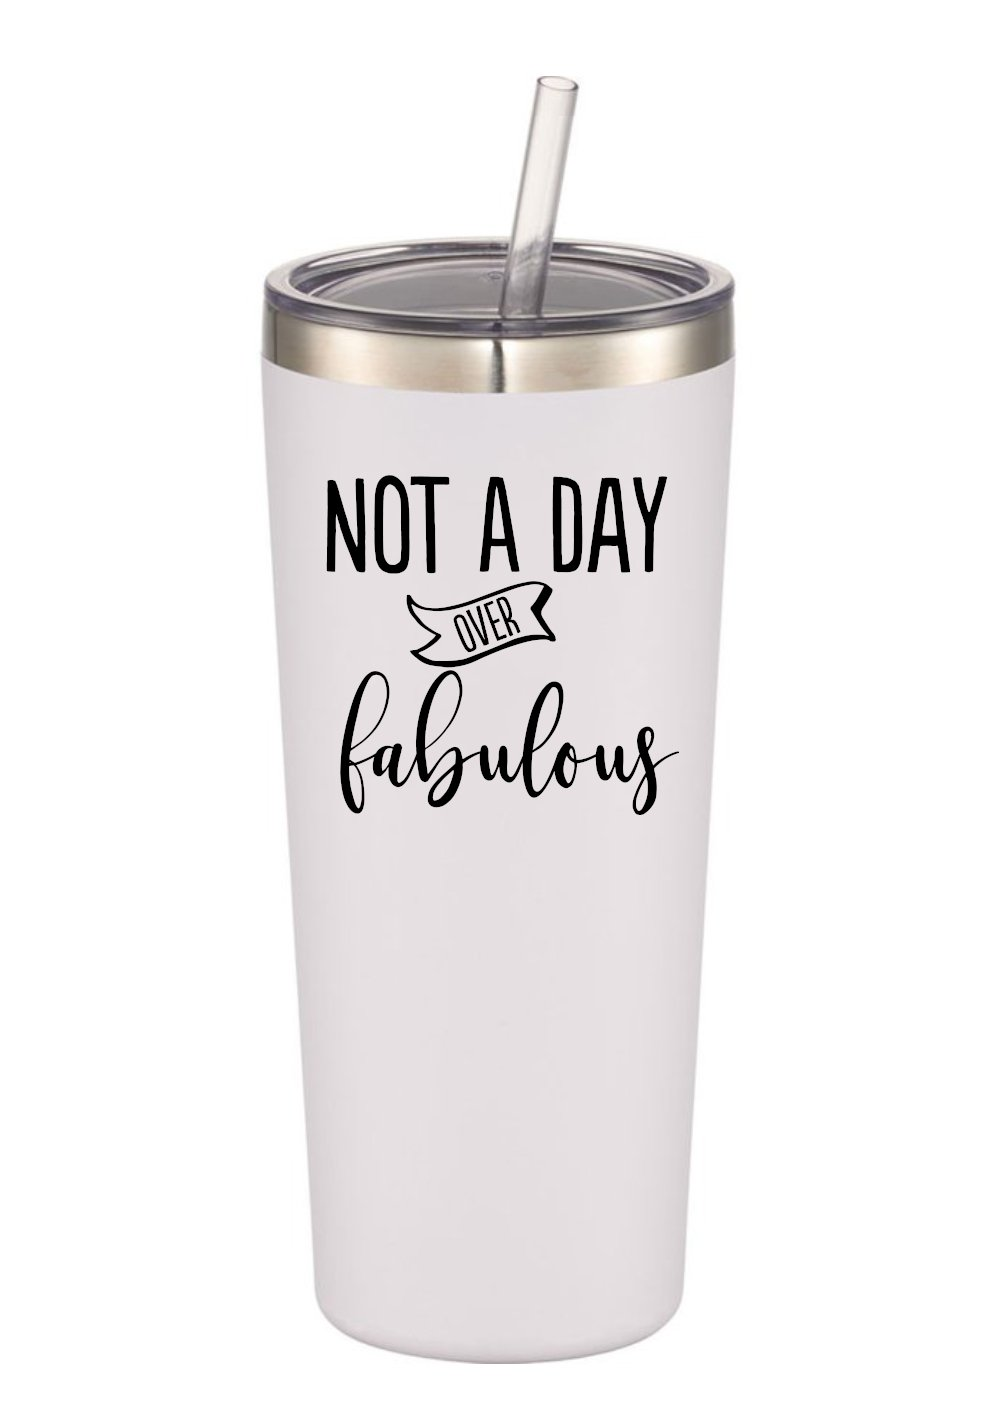 Not A Day Over Fabulous | 22 oz Stainless Steel Insulated Tumbler with Lid and Straw - Birthday Tumbler Cup | Birthday Gift for Her